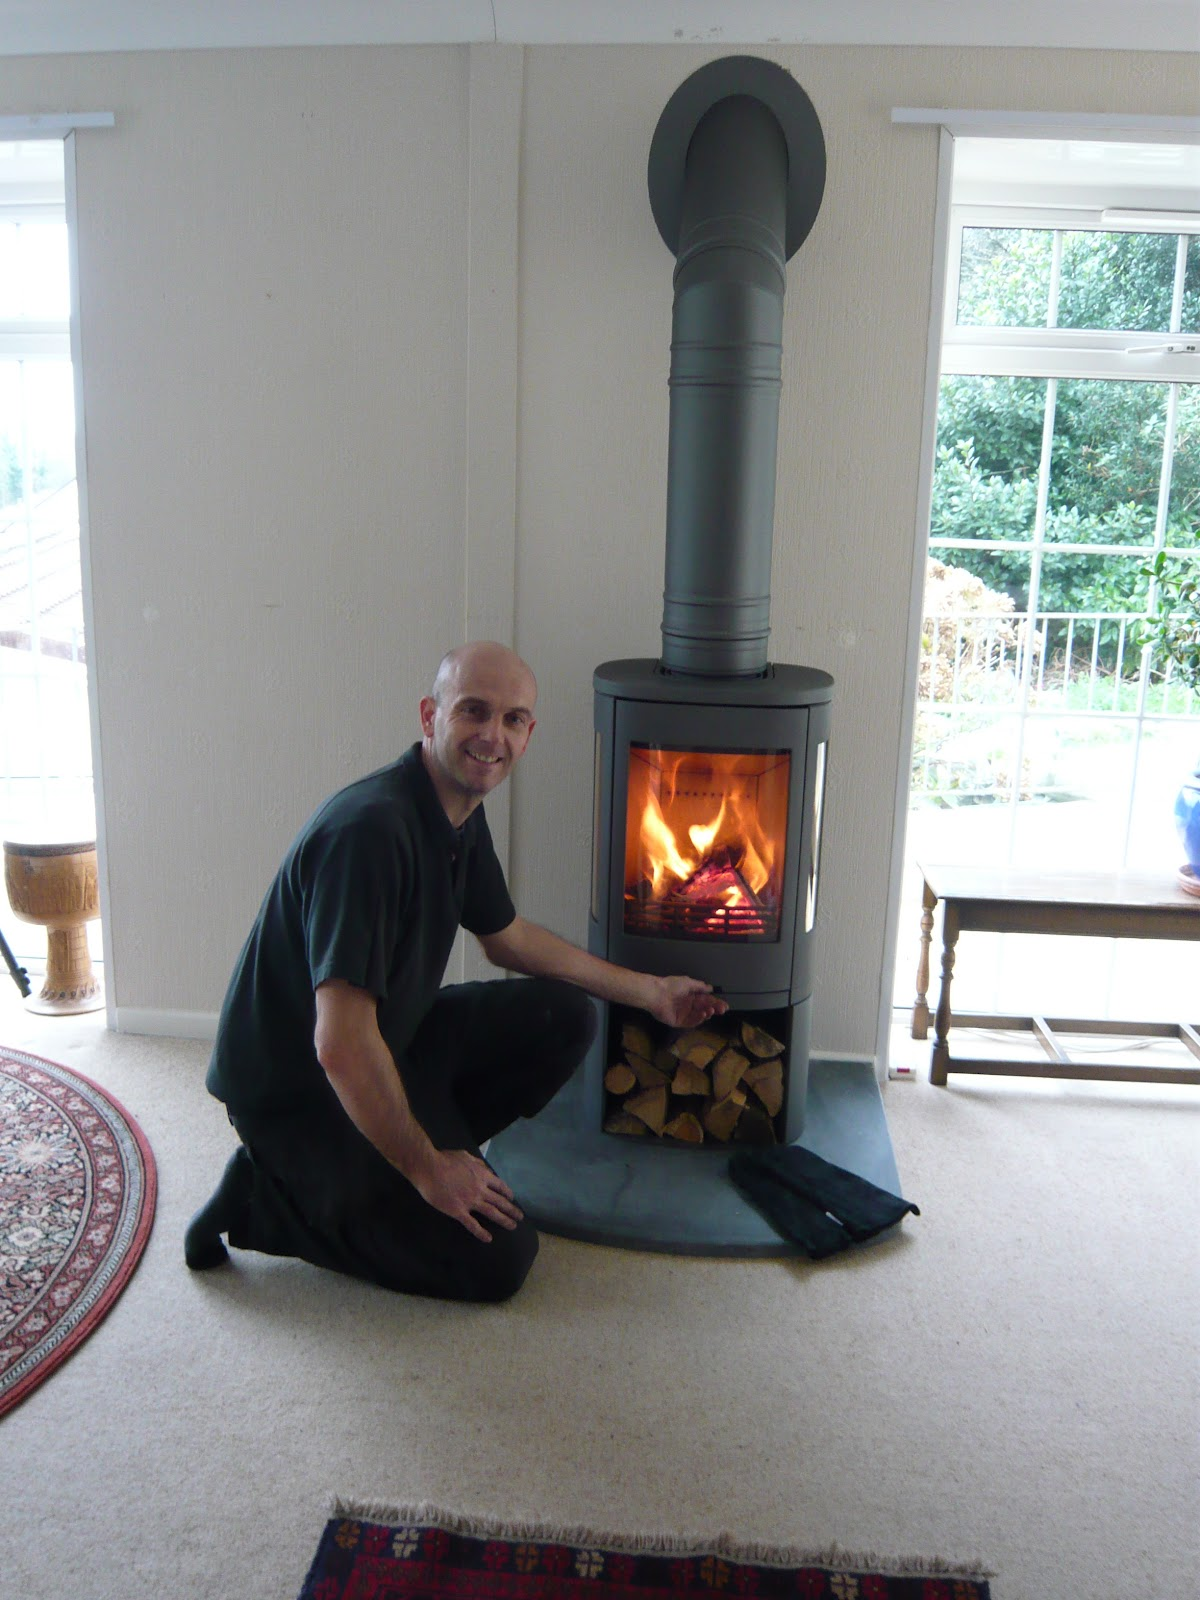 redwood stoves ltd cornwall contura 850 in grey with cut swimming pool plumbing layout